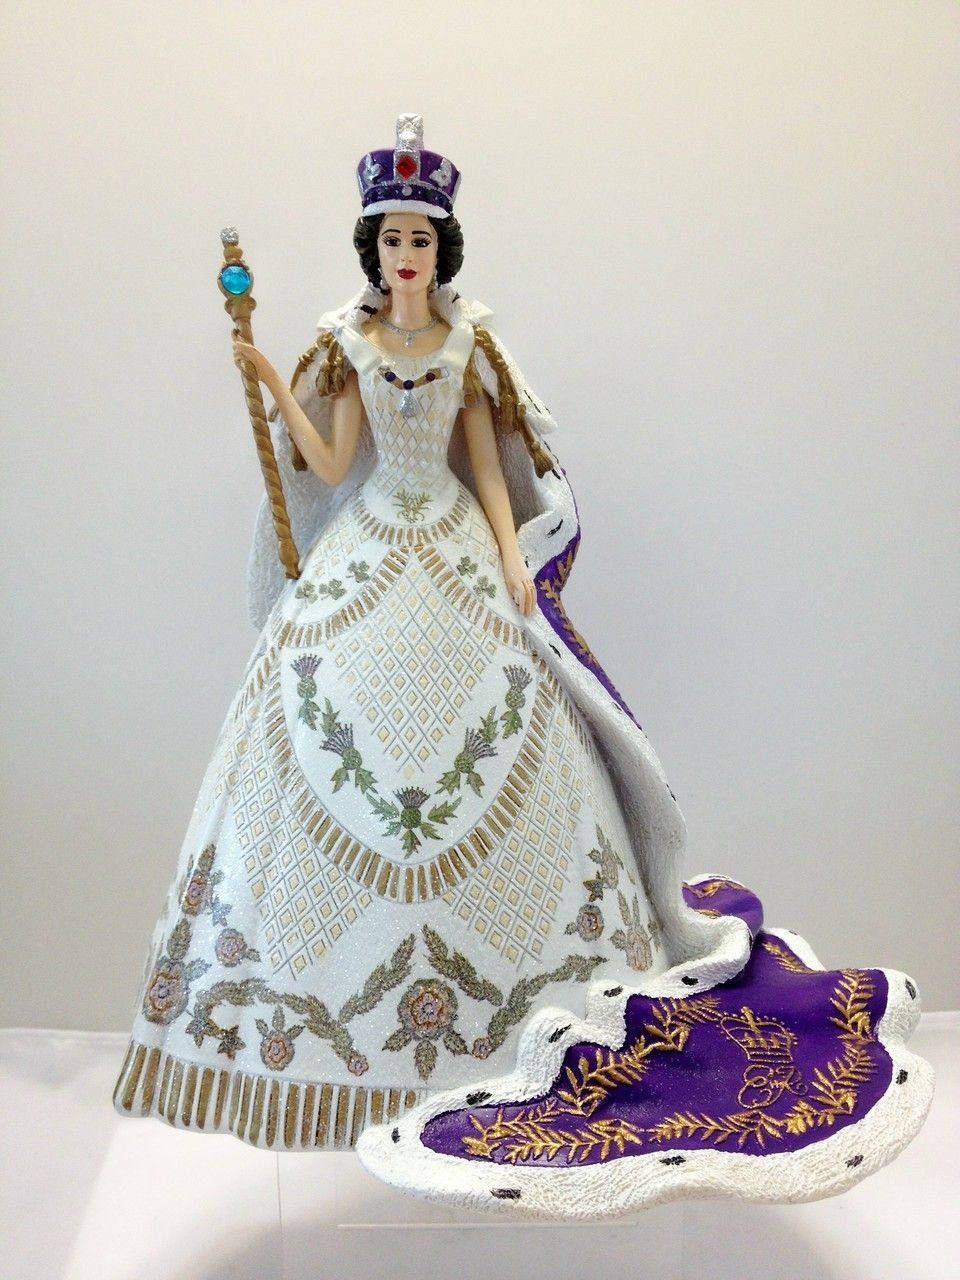 Queen Elizabeth coronation figurine | Royal Figurines ...